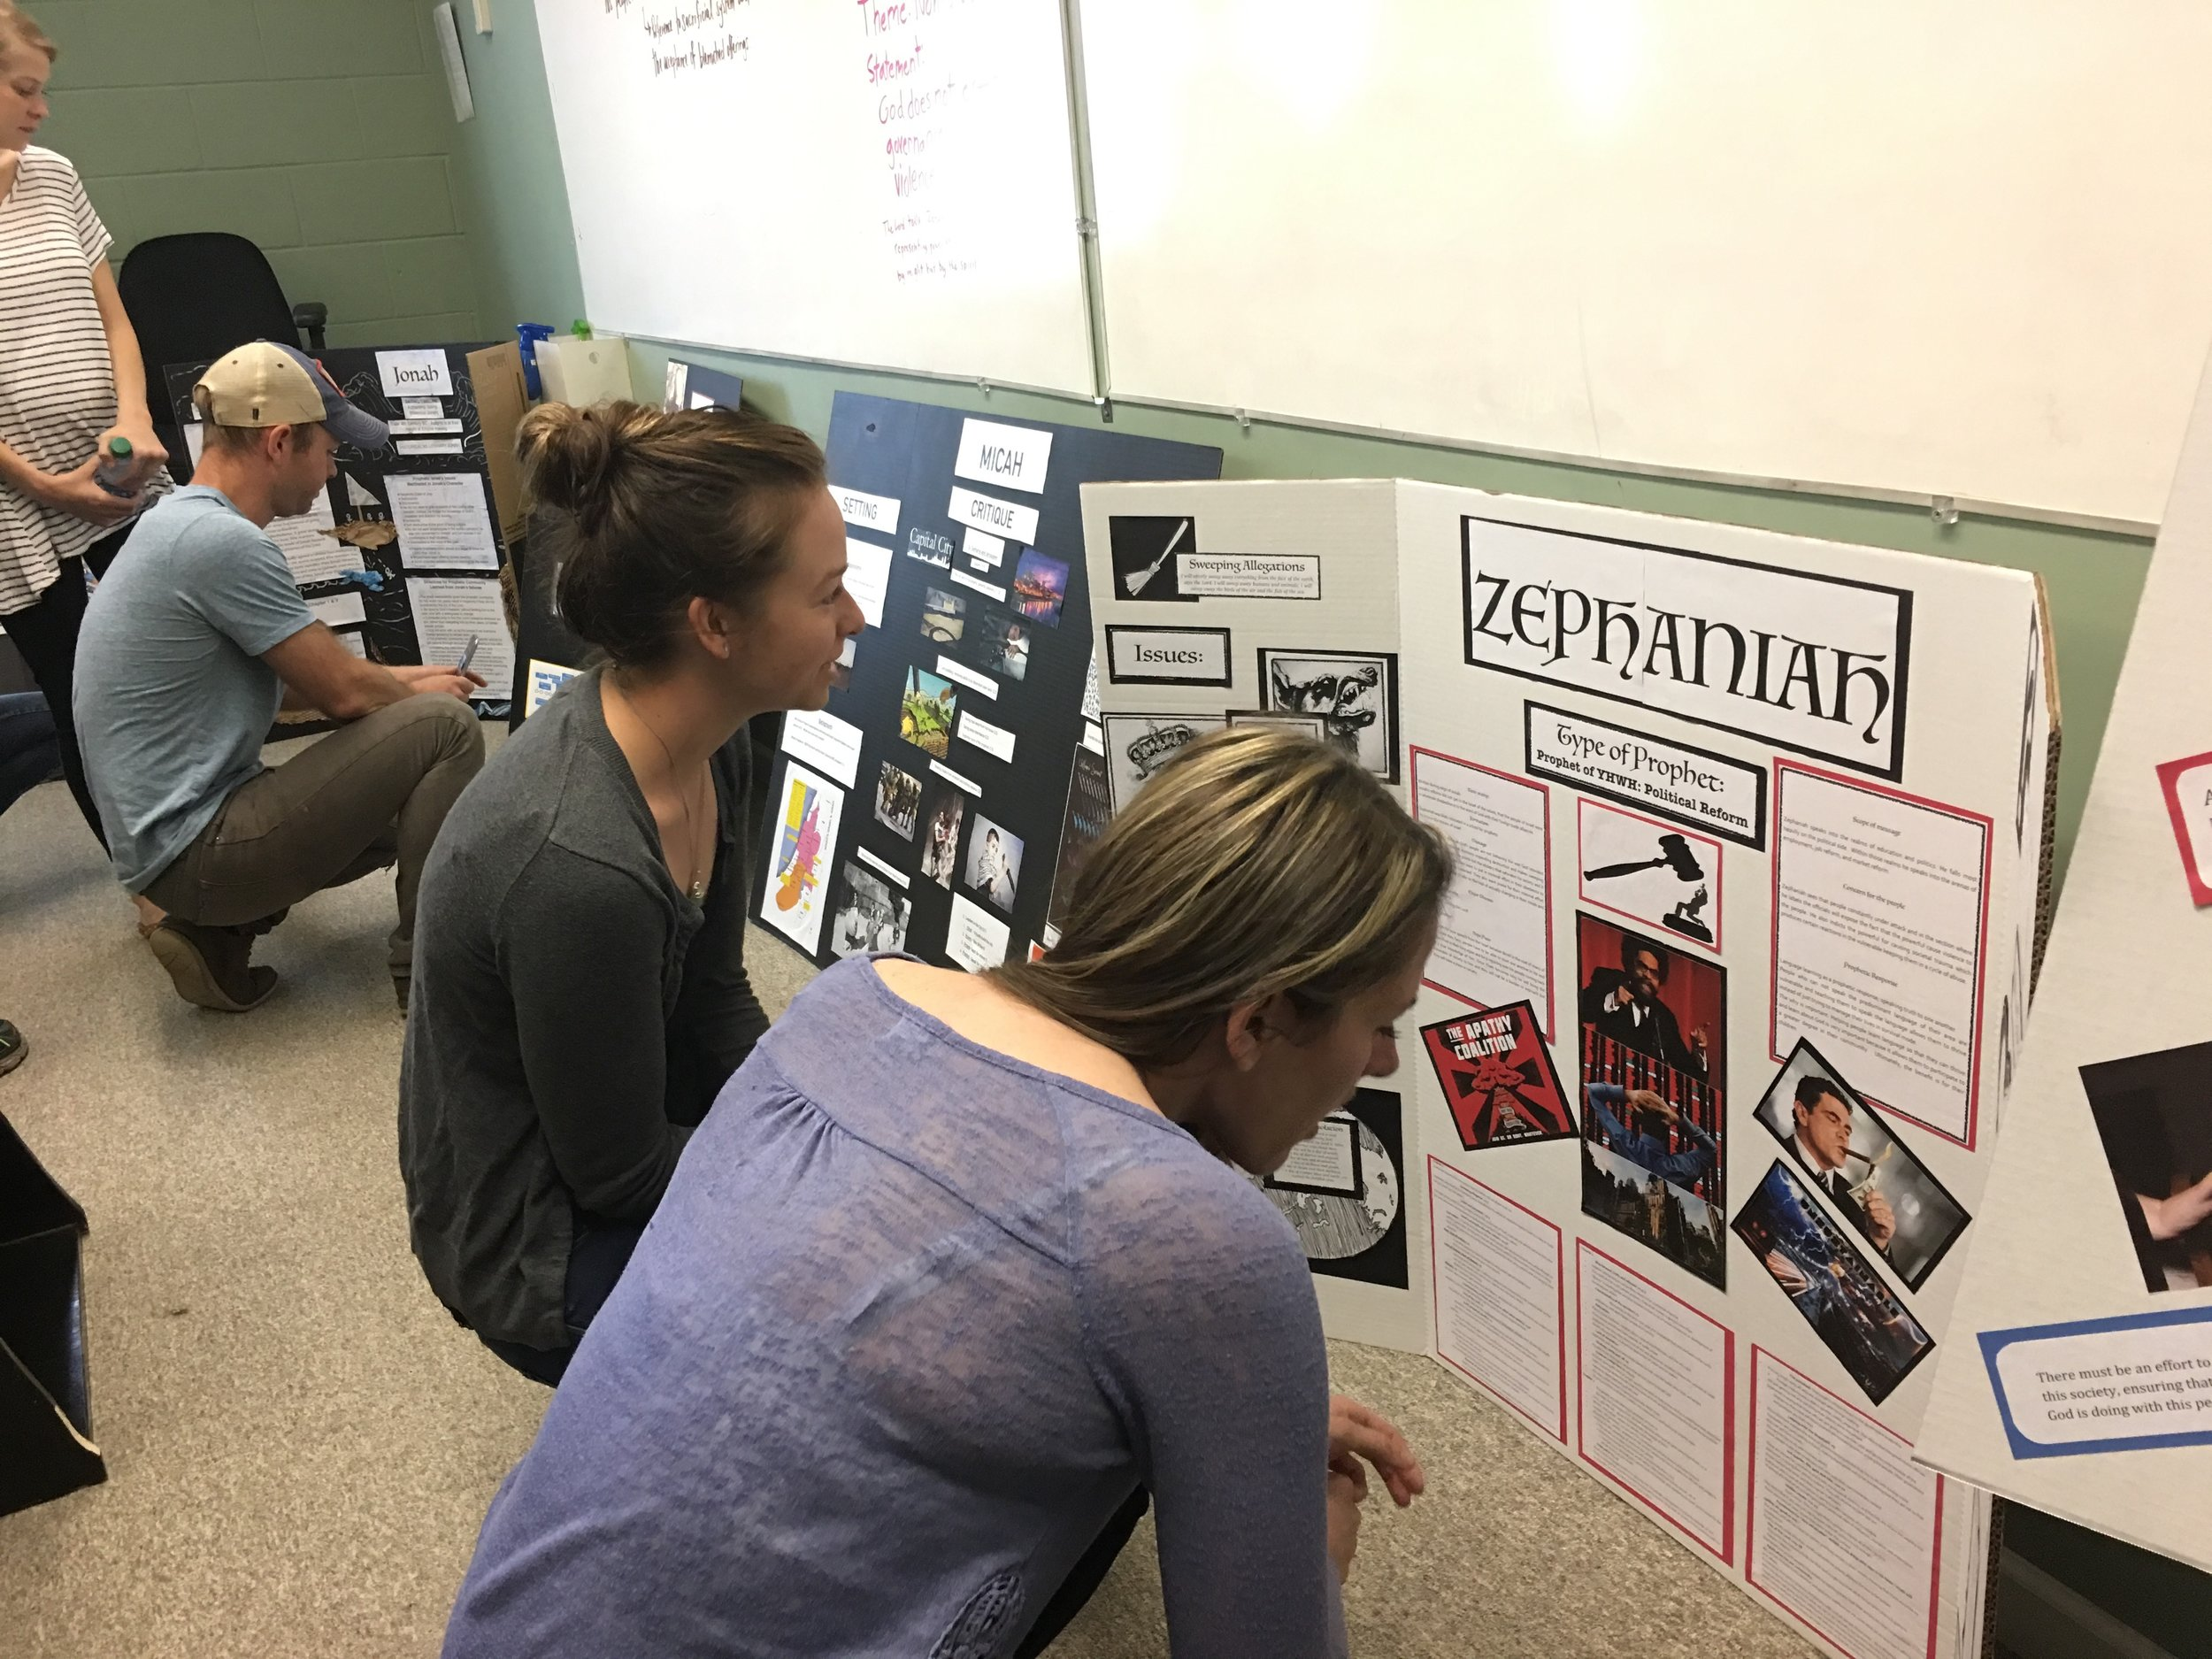 Students from  Prophets class observe one another's visual displays during the final day of class.